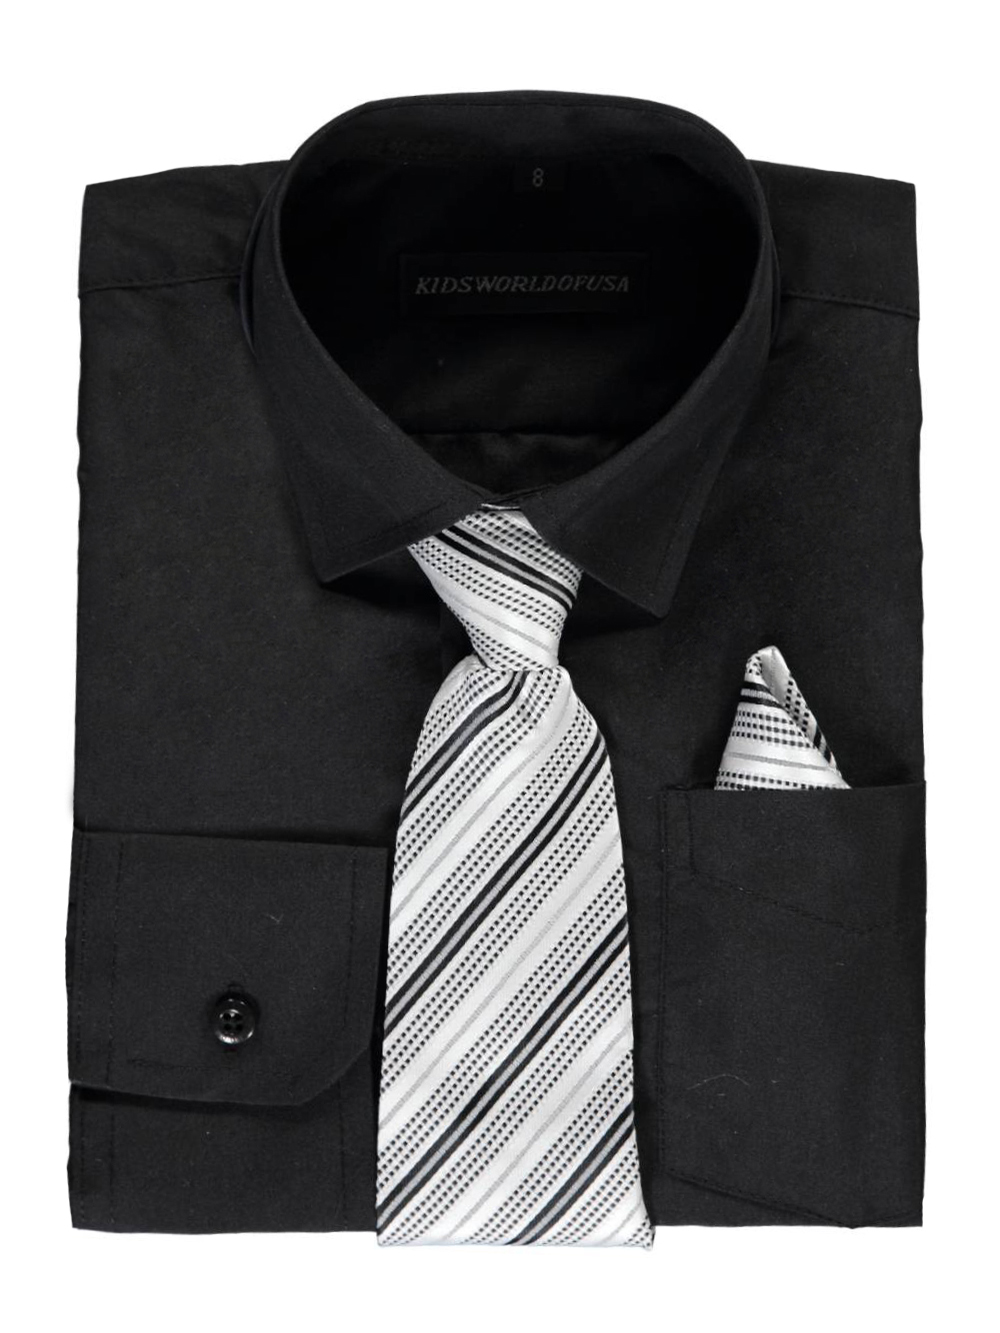 Kids World Big Boys' Dress Shirt with Accessories (Sizes 8 - 20) - black, 14